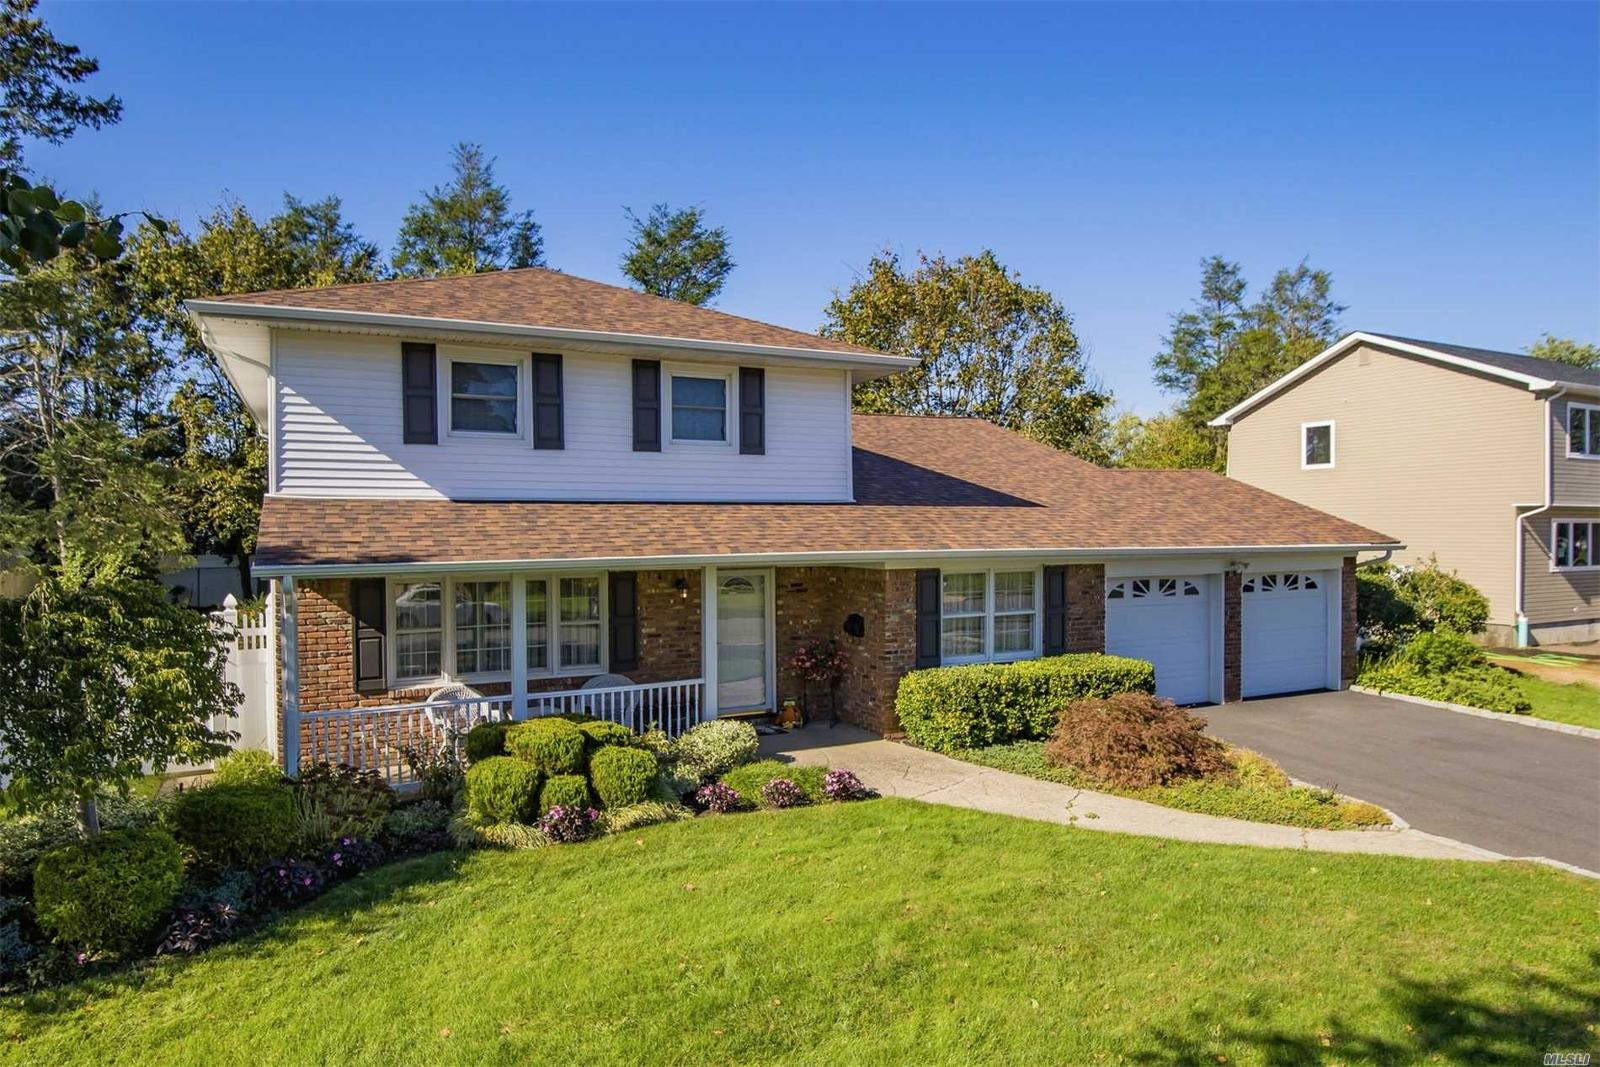 Smithtown Homes For Sale